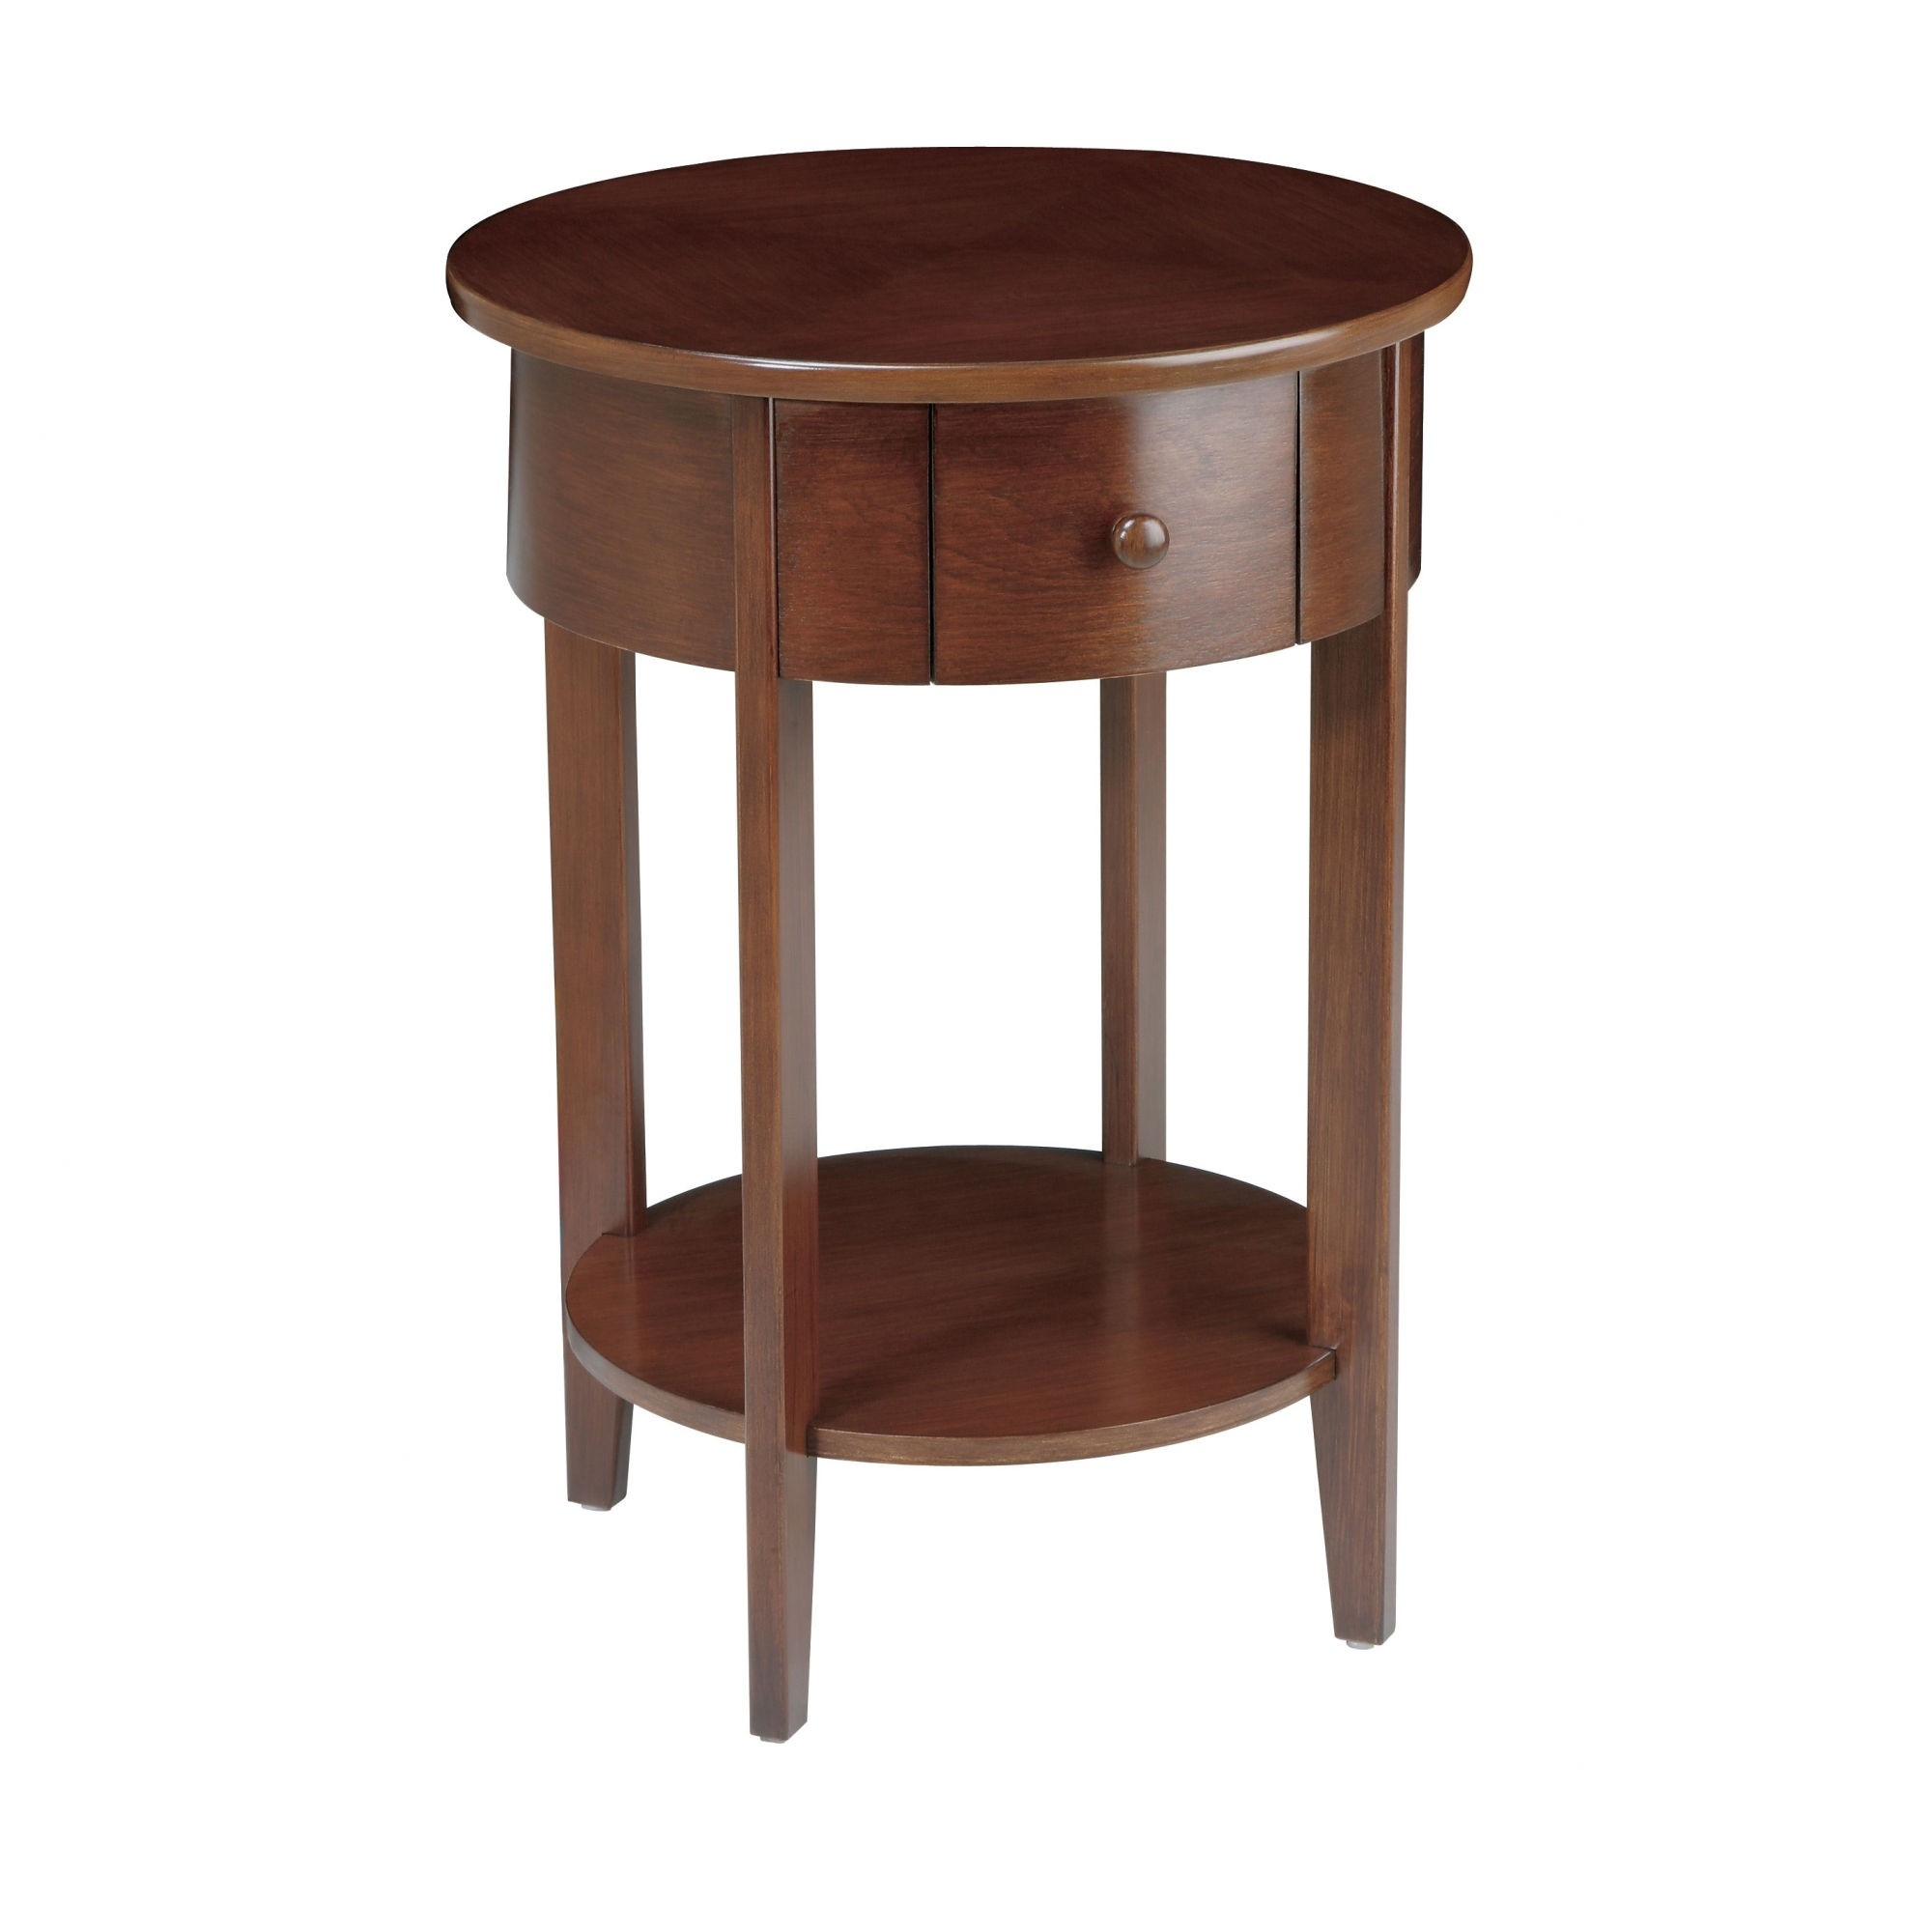 delightful unfinished round end tables pedestal legs wood farm and night oak cape for rent argos room kitchen table wooden furniture town childrens childs small polokwane rental